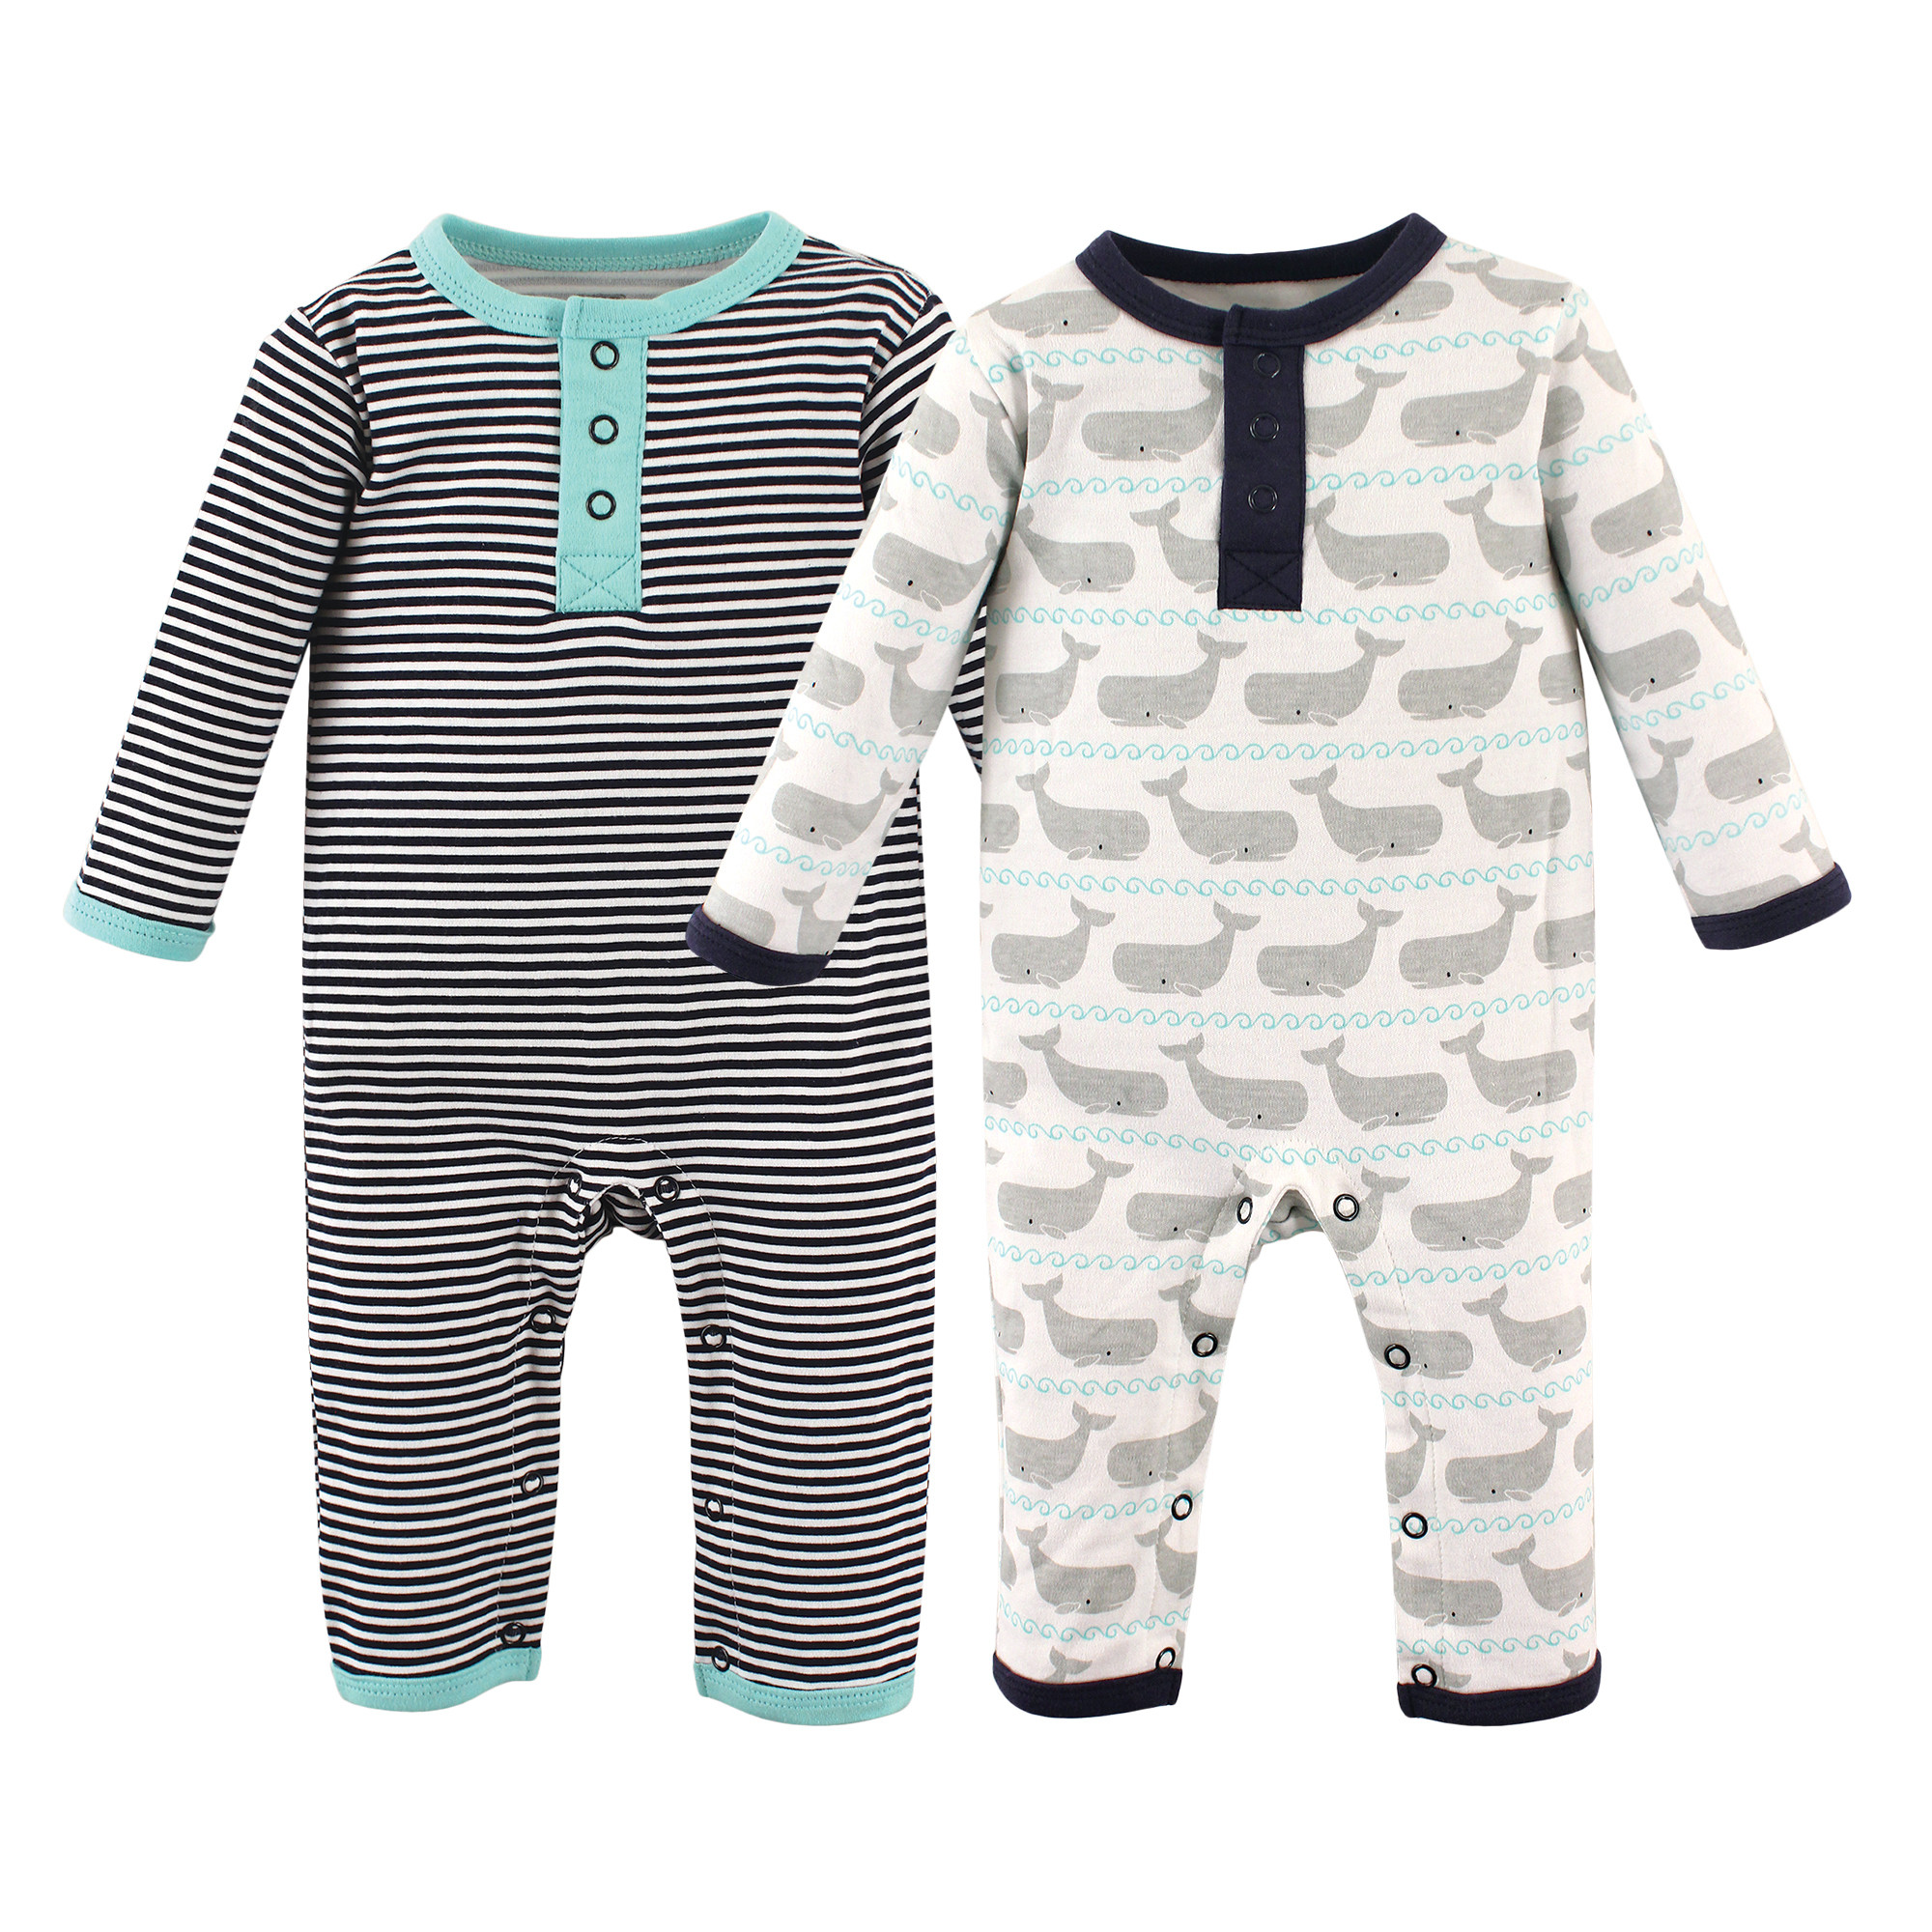 Hudson baby Clothing Union suits